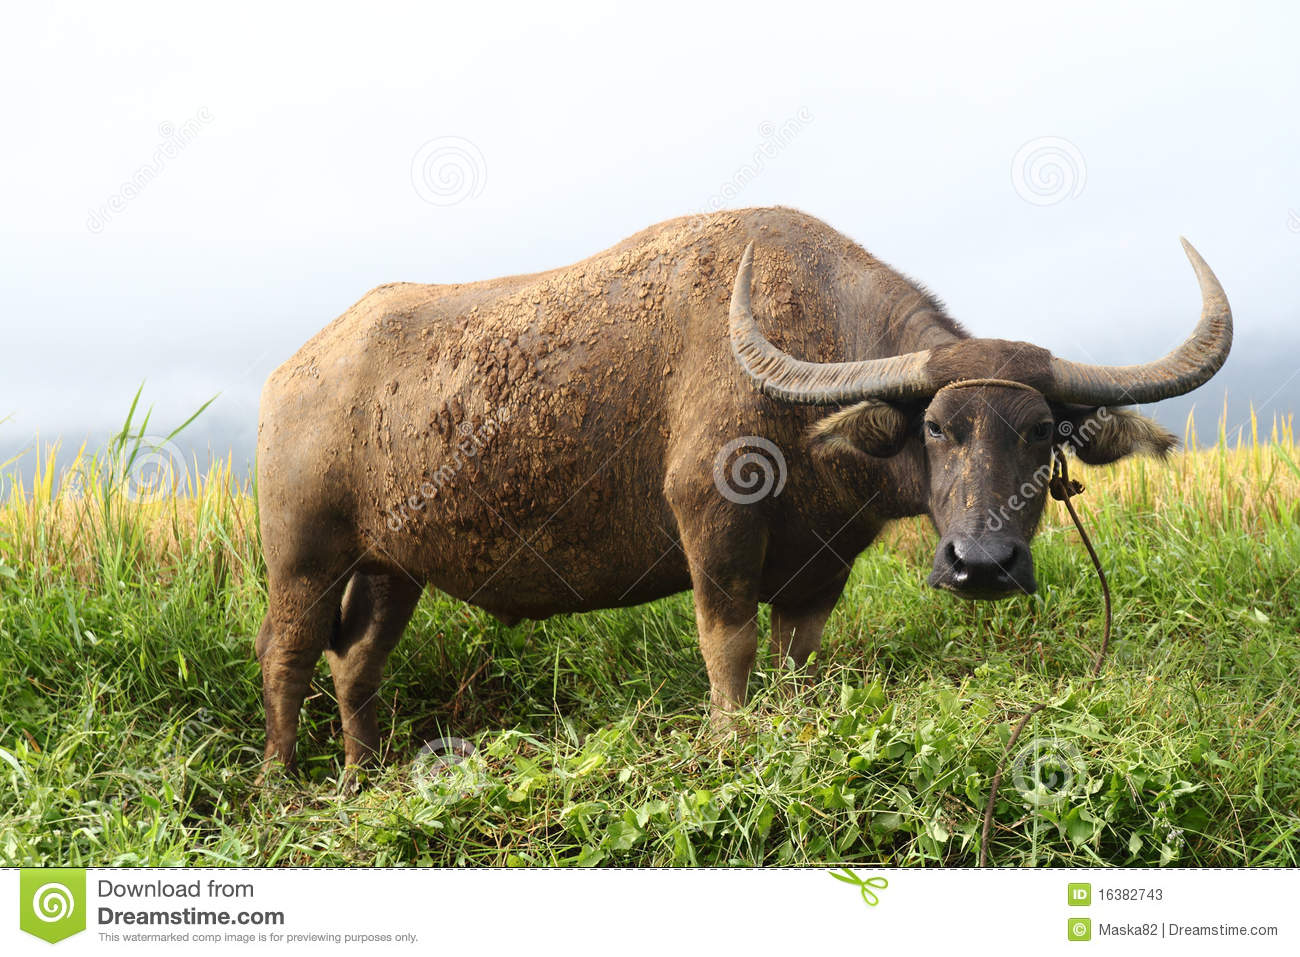 Water buffalo or carabao grazing in a field.